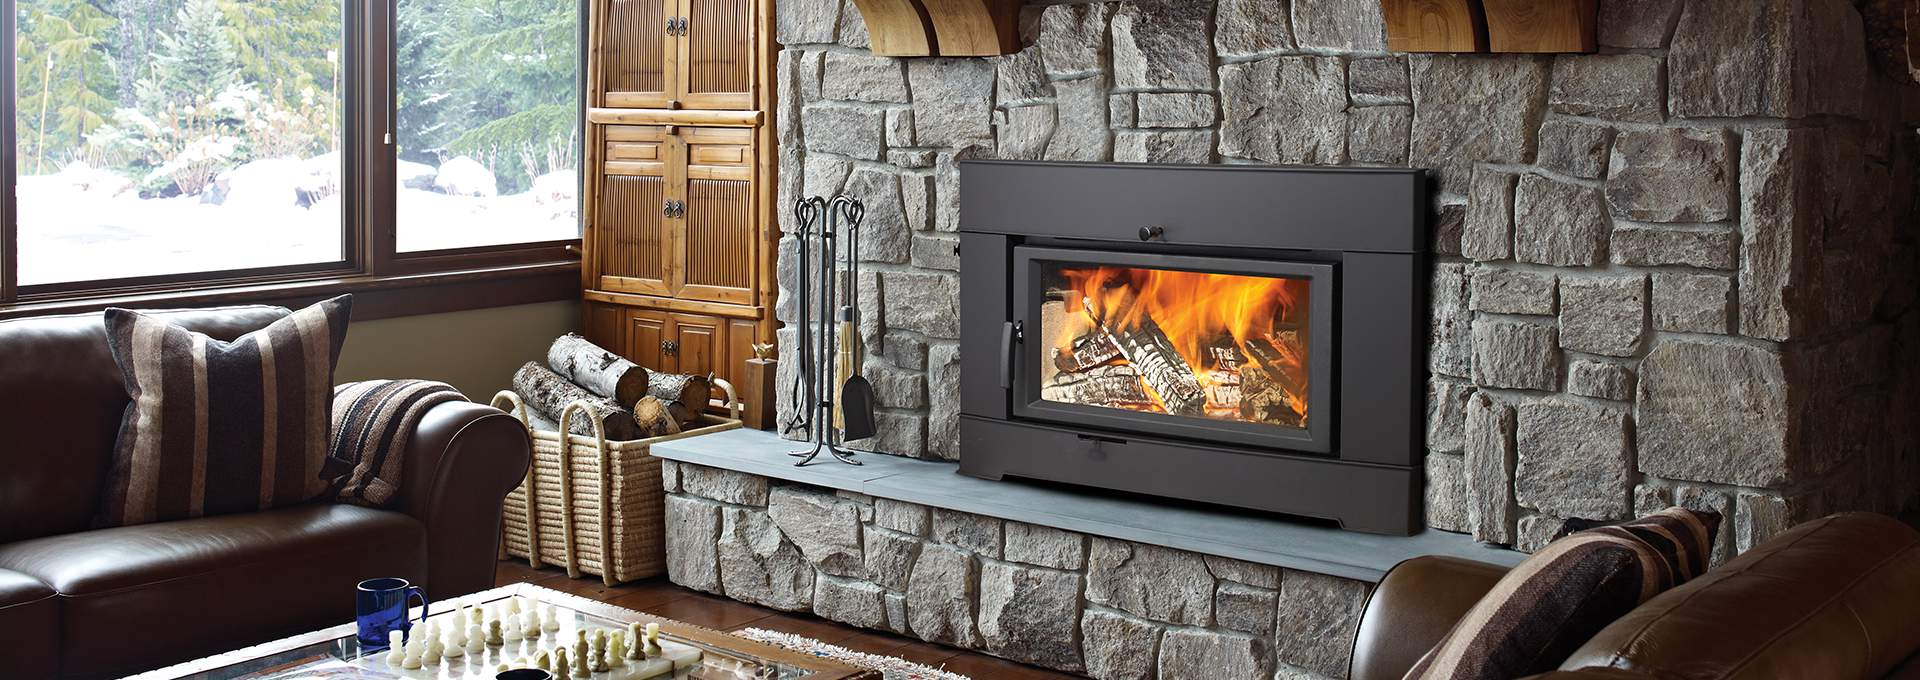 Some Like It Hot Durham Ontario Fireplaces Stoves Patio Furniture Awnings